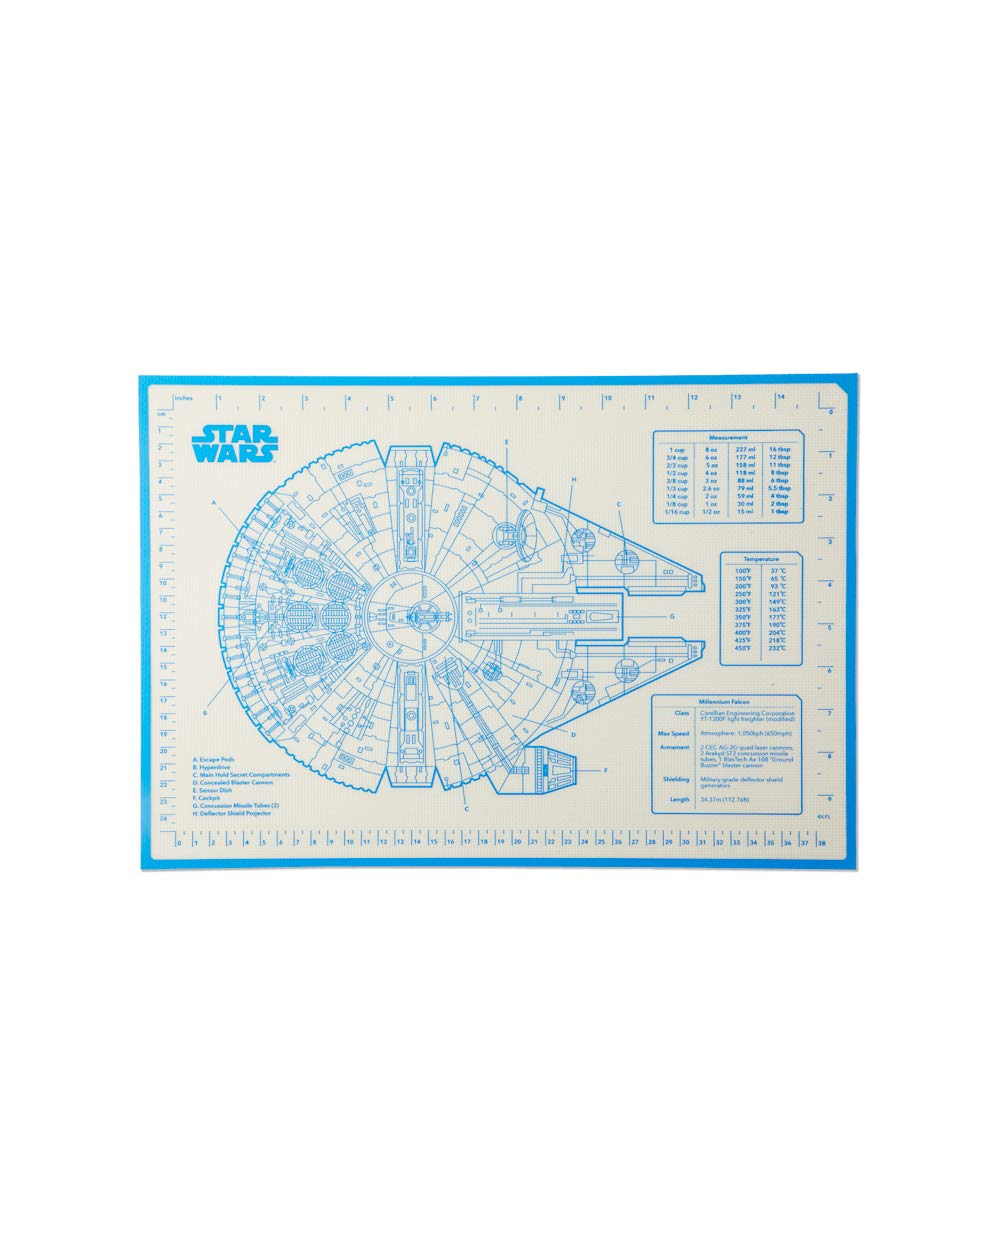 W&P Limited Star Wars Collection Silicone Baking Mat Blanket, Millennium Falcon, Home Essentials, Dishwasher Safe